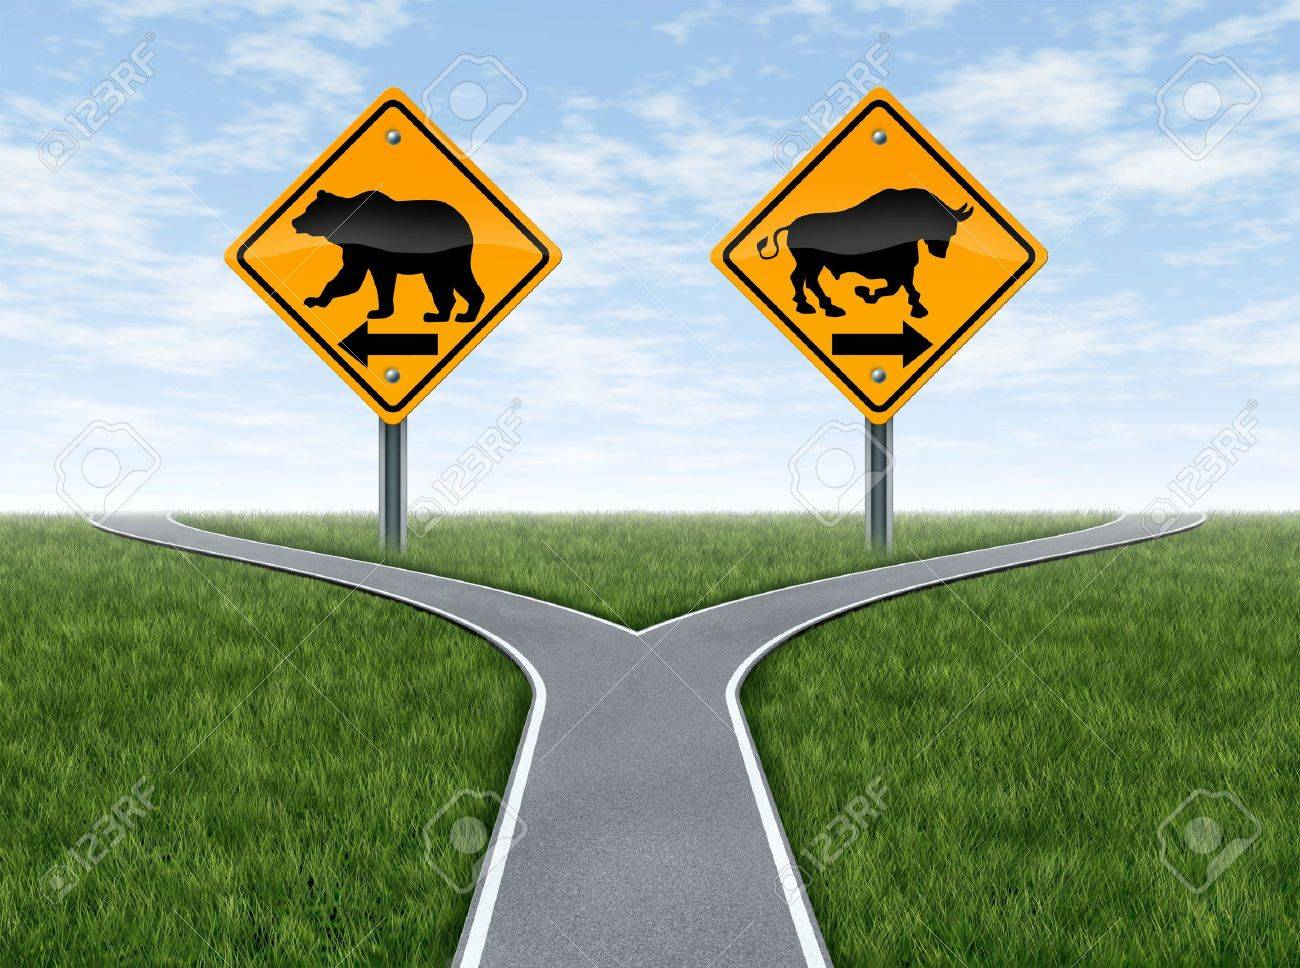 Stock market bull and bear representing the concepts of greed versus fear as a wall street financial crossroads challenge in a confused direction choice on a blue sky with summer landscape Stock Photo - 13876627